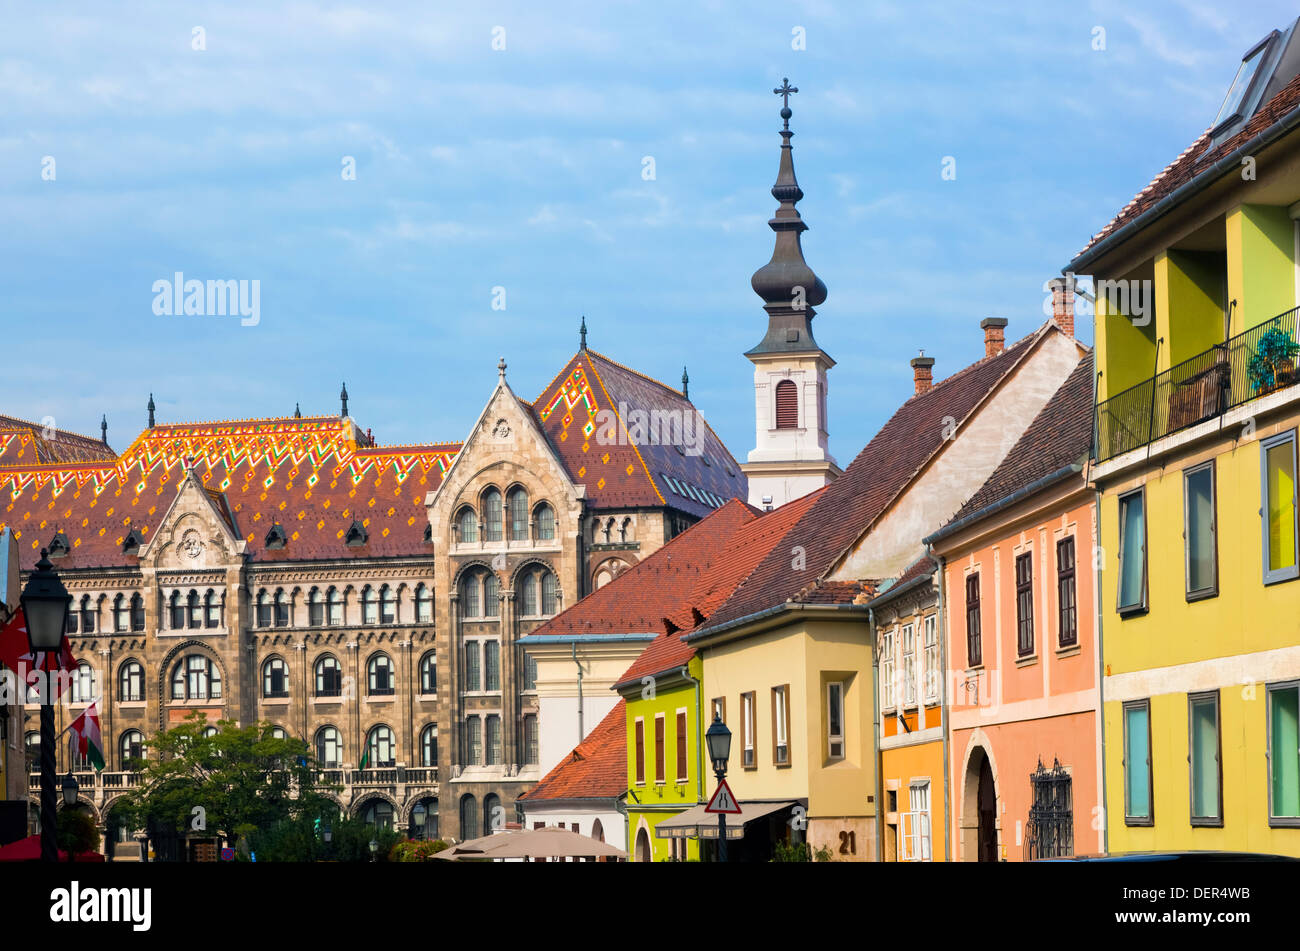 Old town buildings on the Buda Castle hill in Budapest, Hungary, Europe - Stock Image